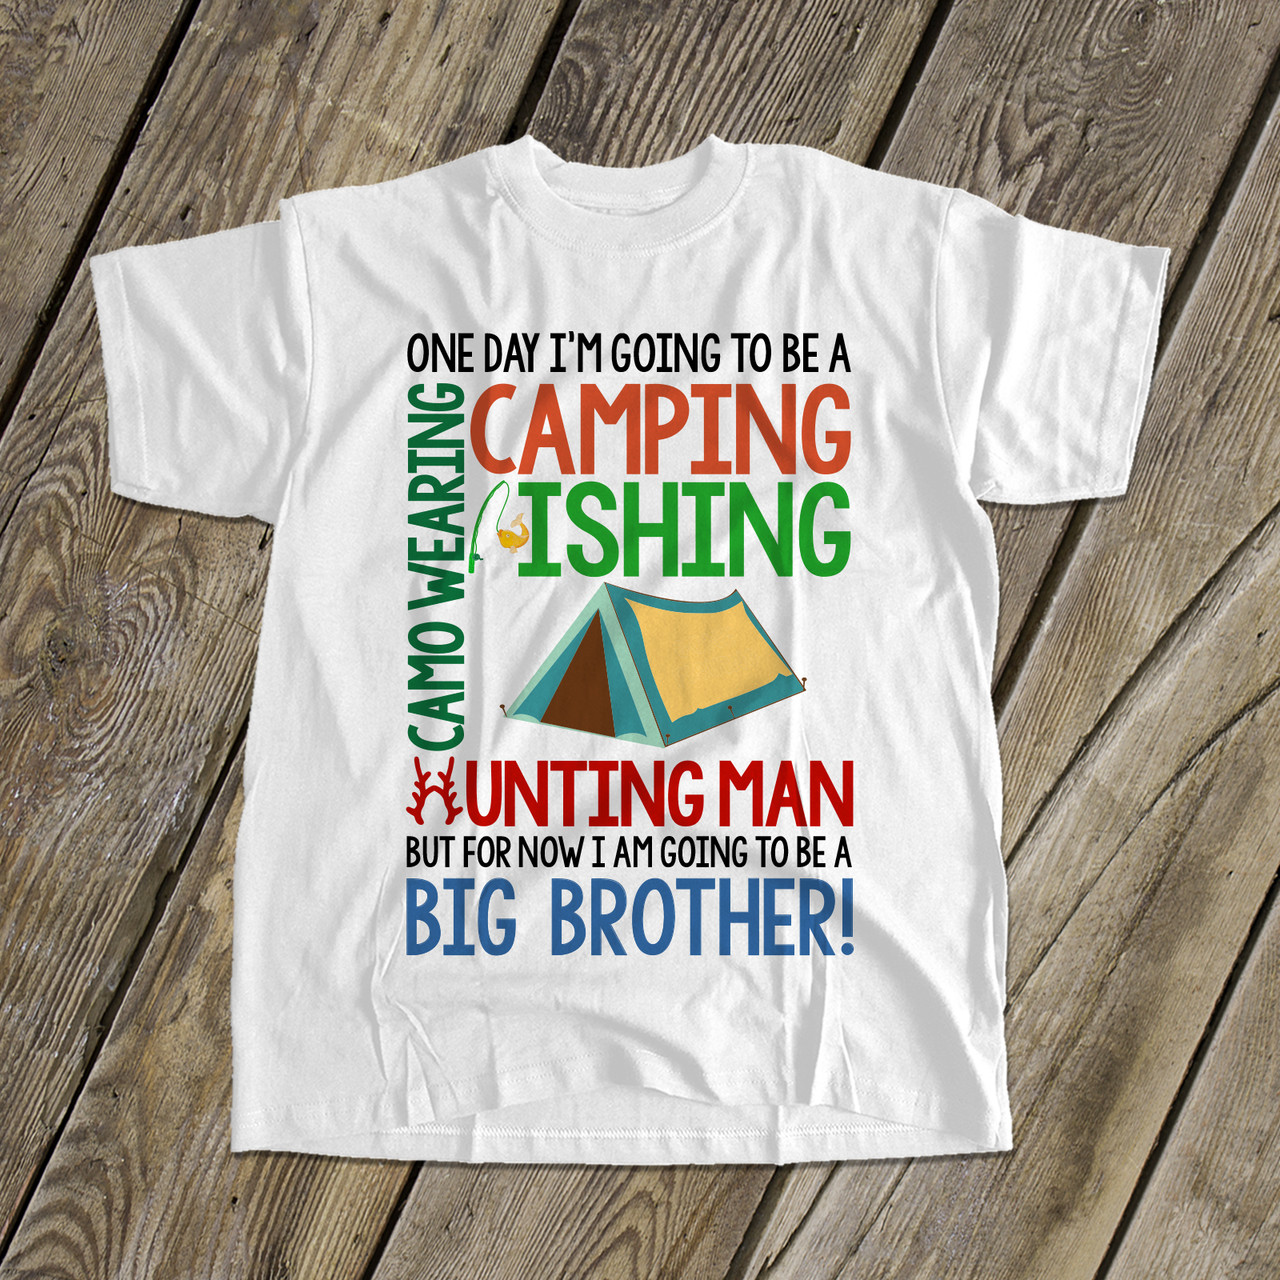 Pack My Stuff Toddler//Kids Short Sleeve T-Shirt Im Going Fishing with My Big Brother